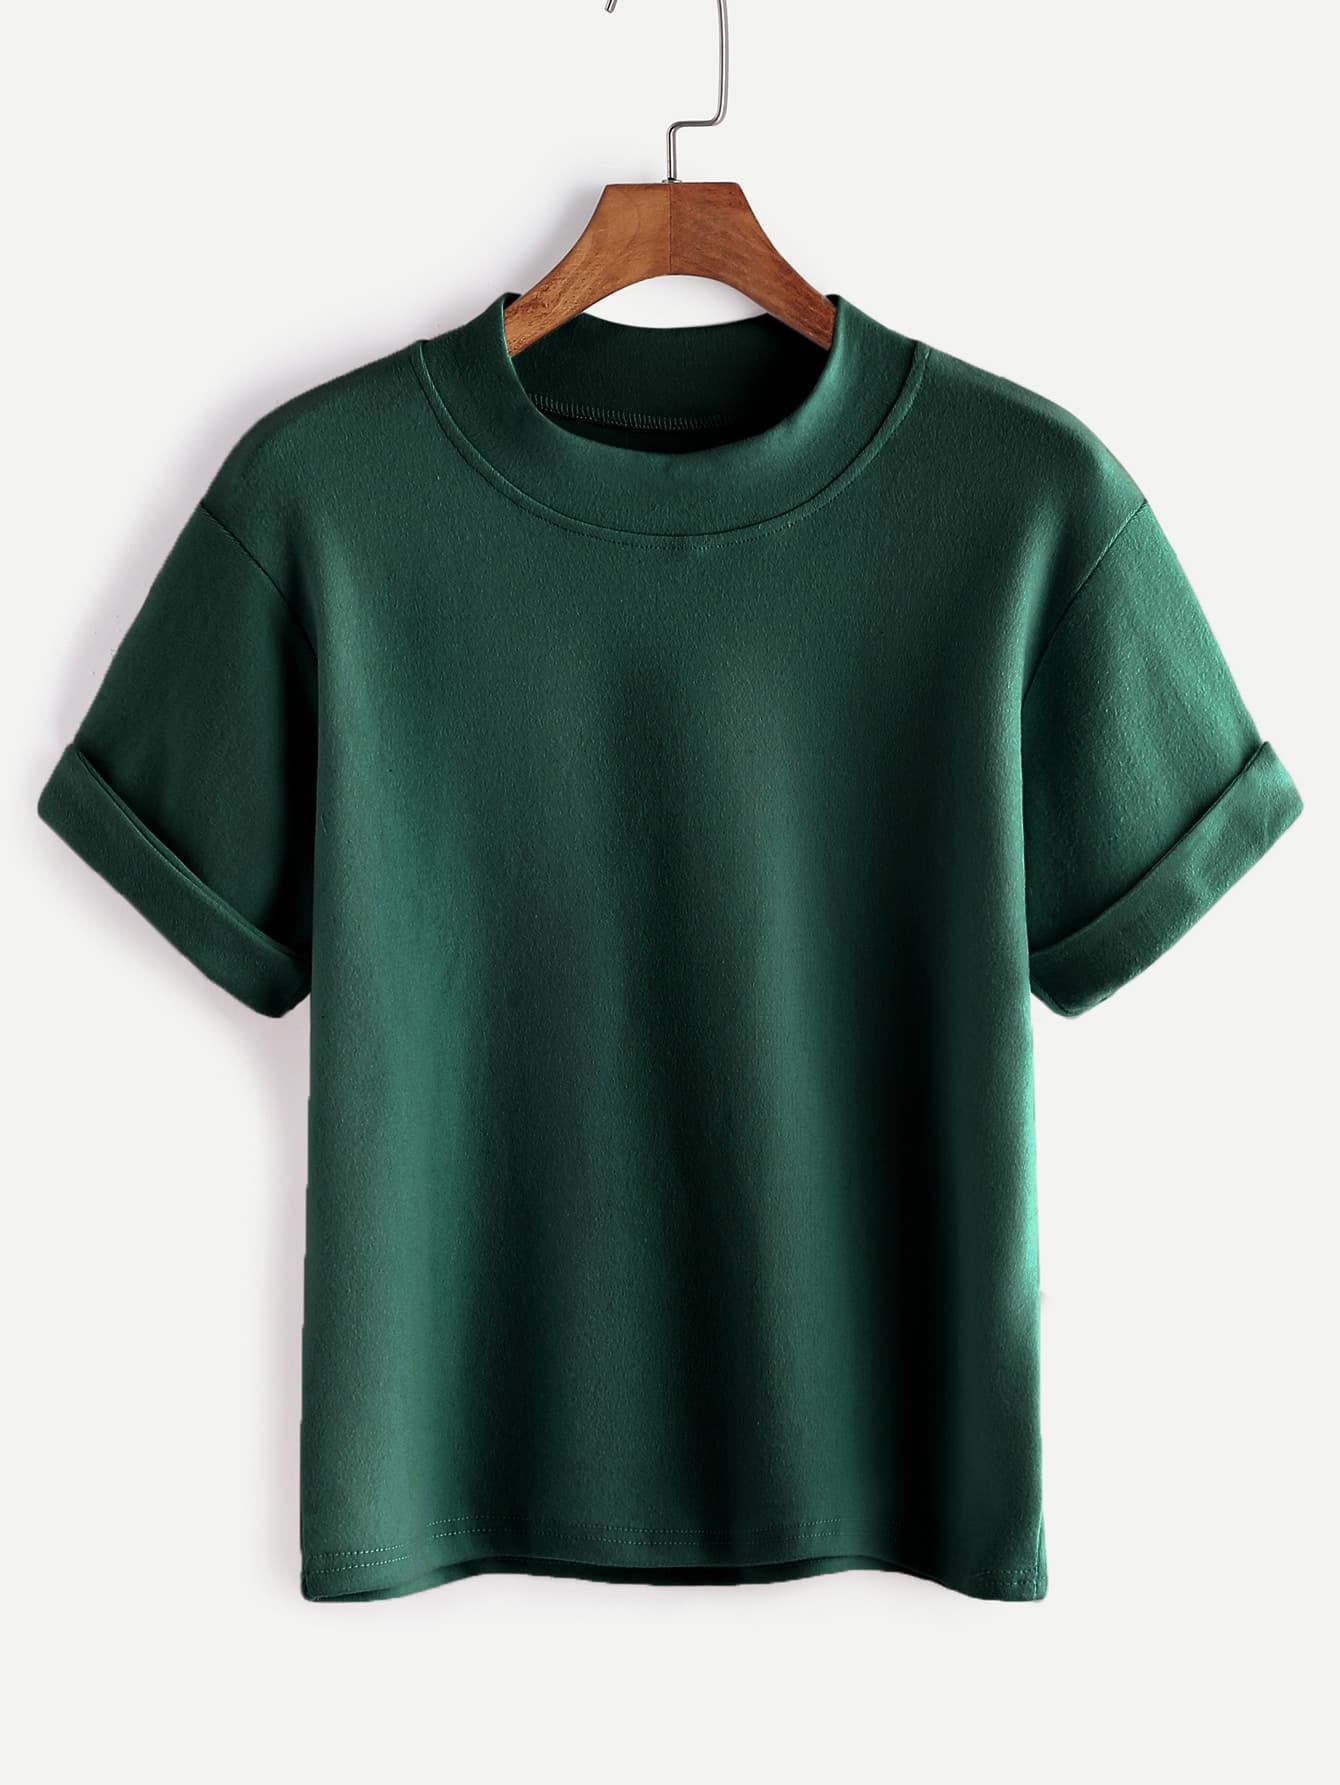 Dark Green Mock Neck Cuffed T-shirt